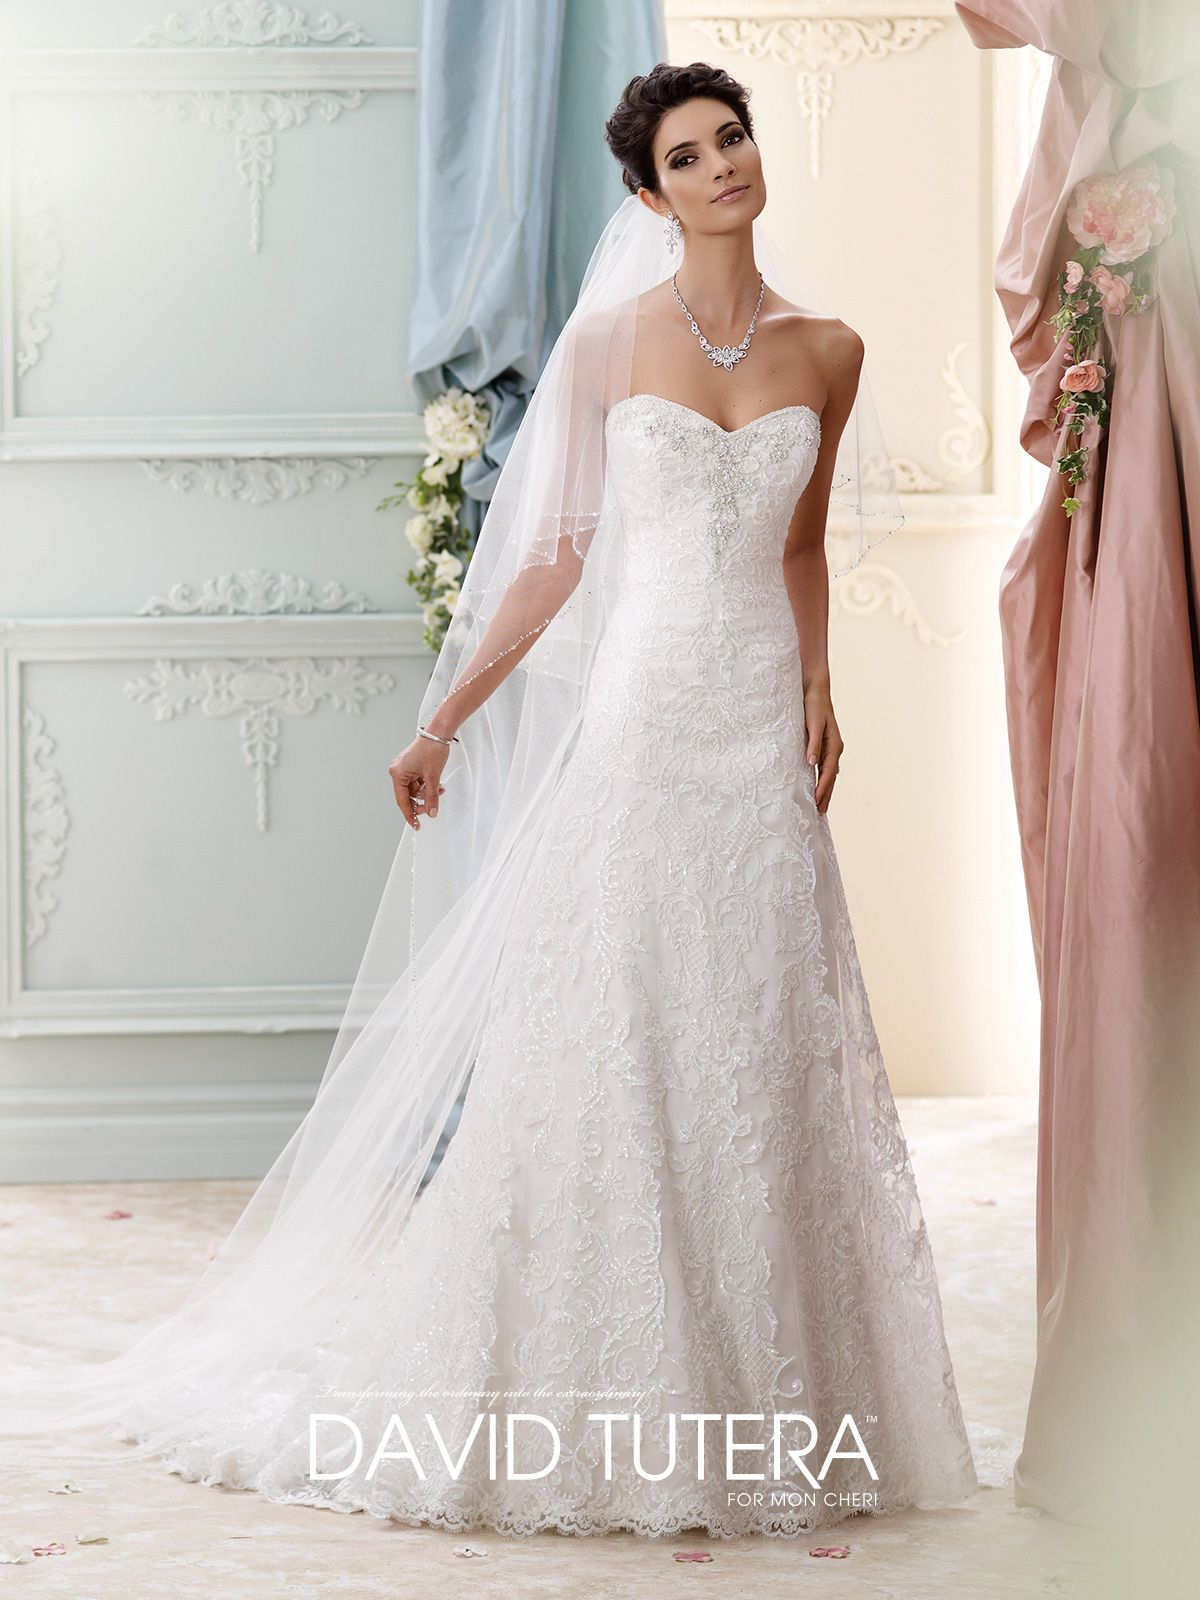 Allover sequin lace and tulle over luxurious satin detachable